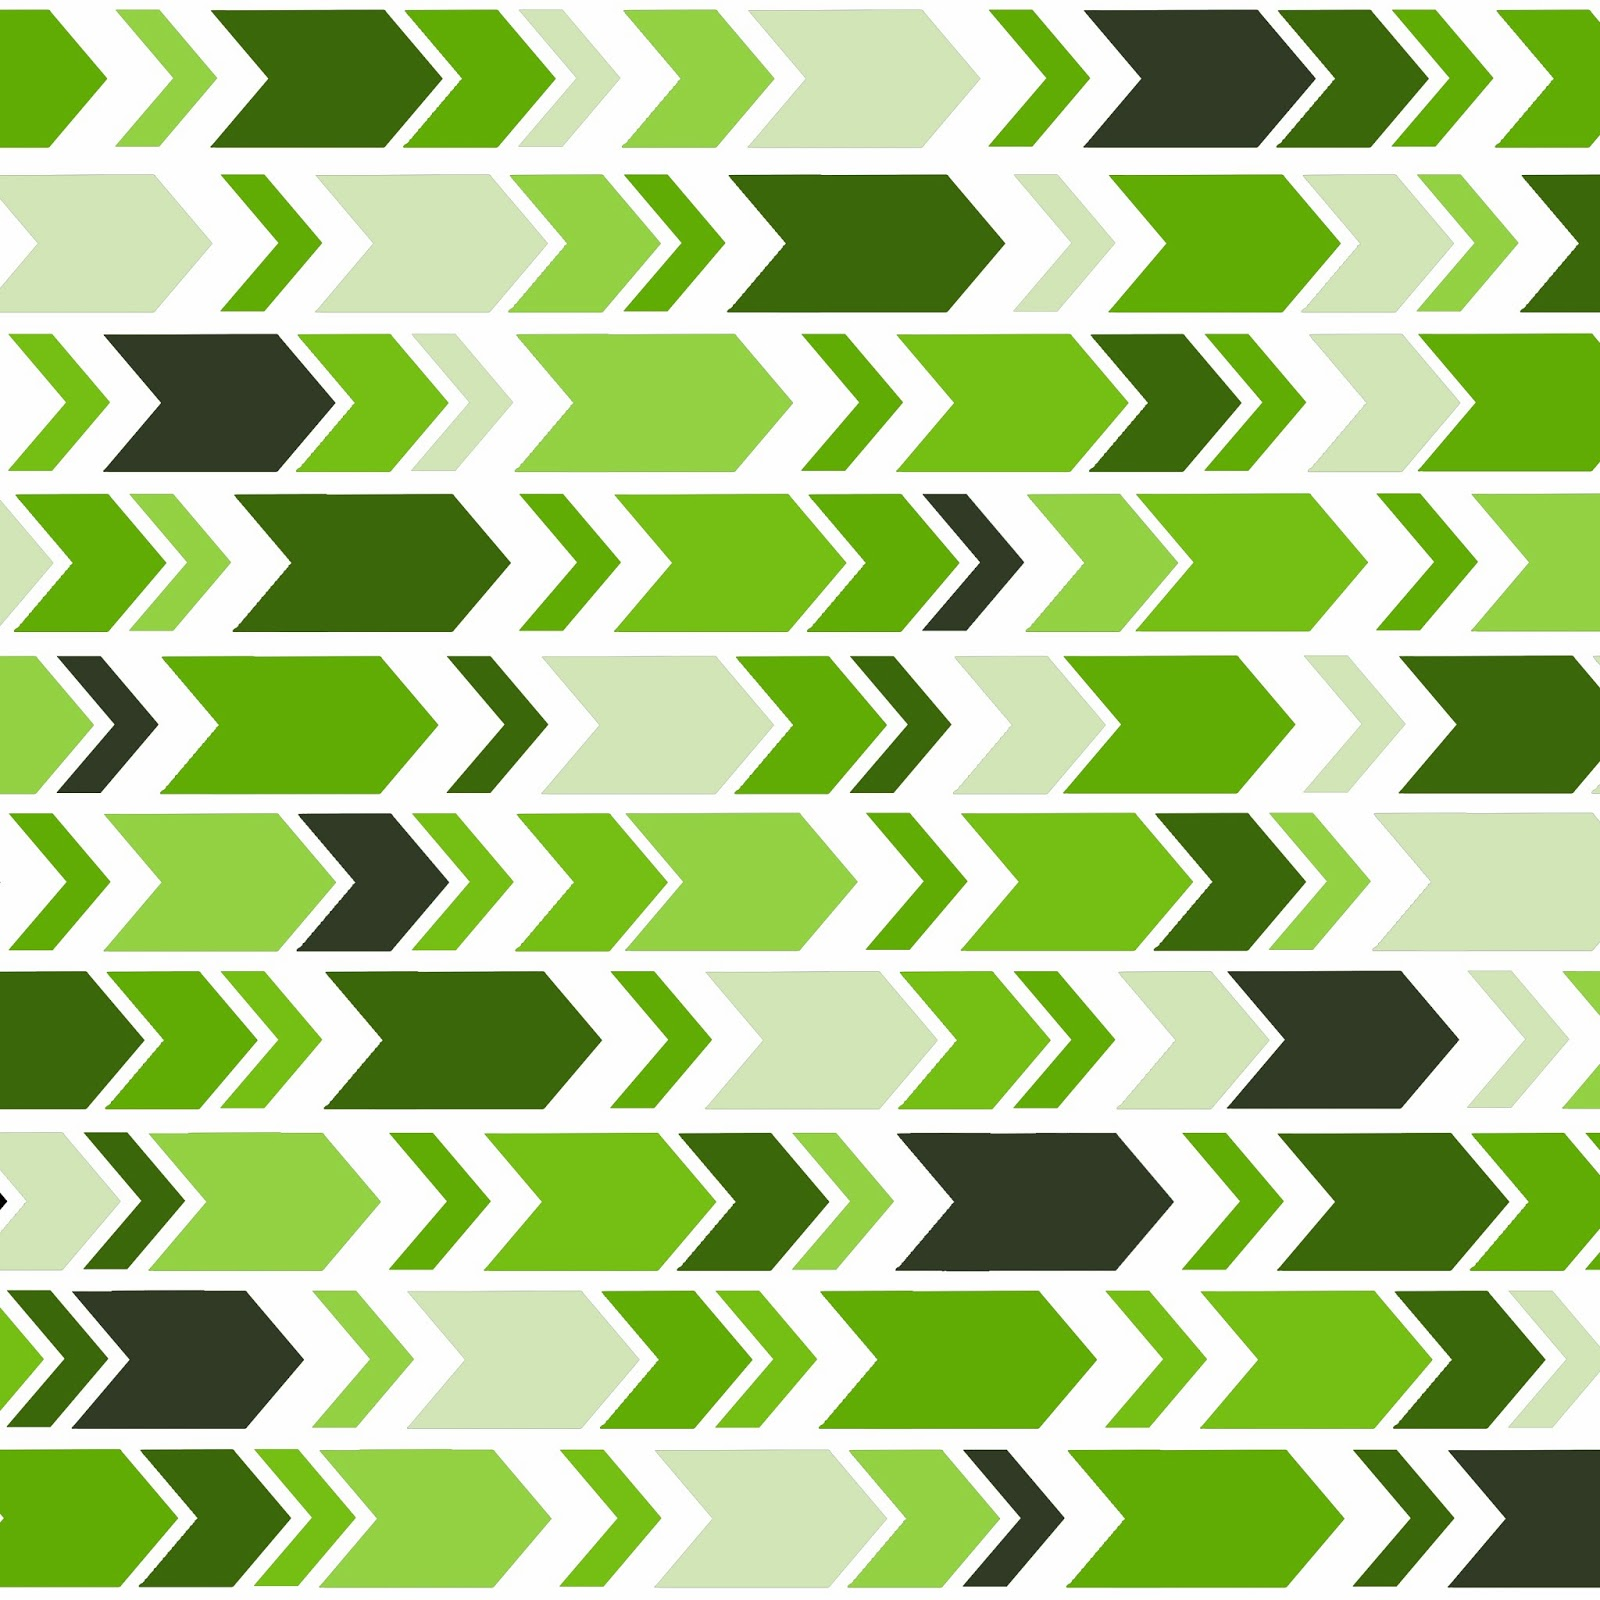 Green clipart arrow head clip art royalty free download 10+ images about Free Clip arts on Pinterest | Clip art, Wall ... clip art royalty free download